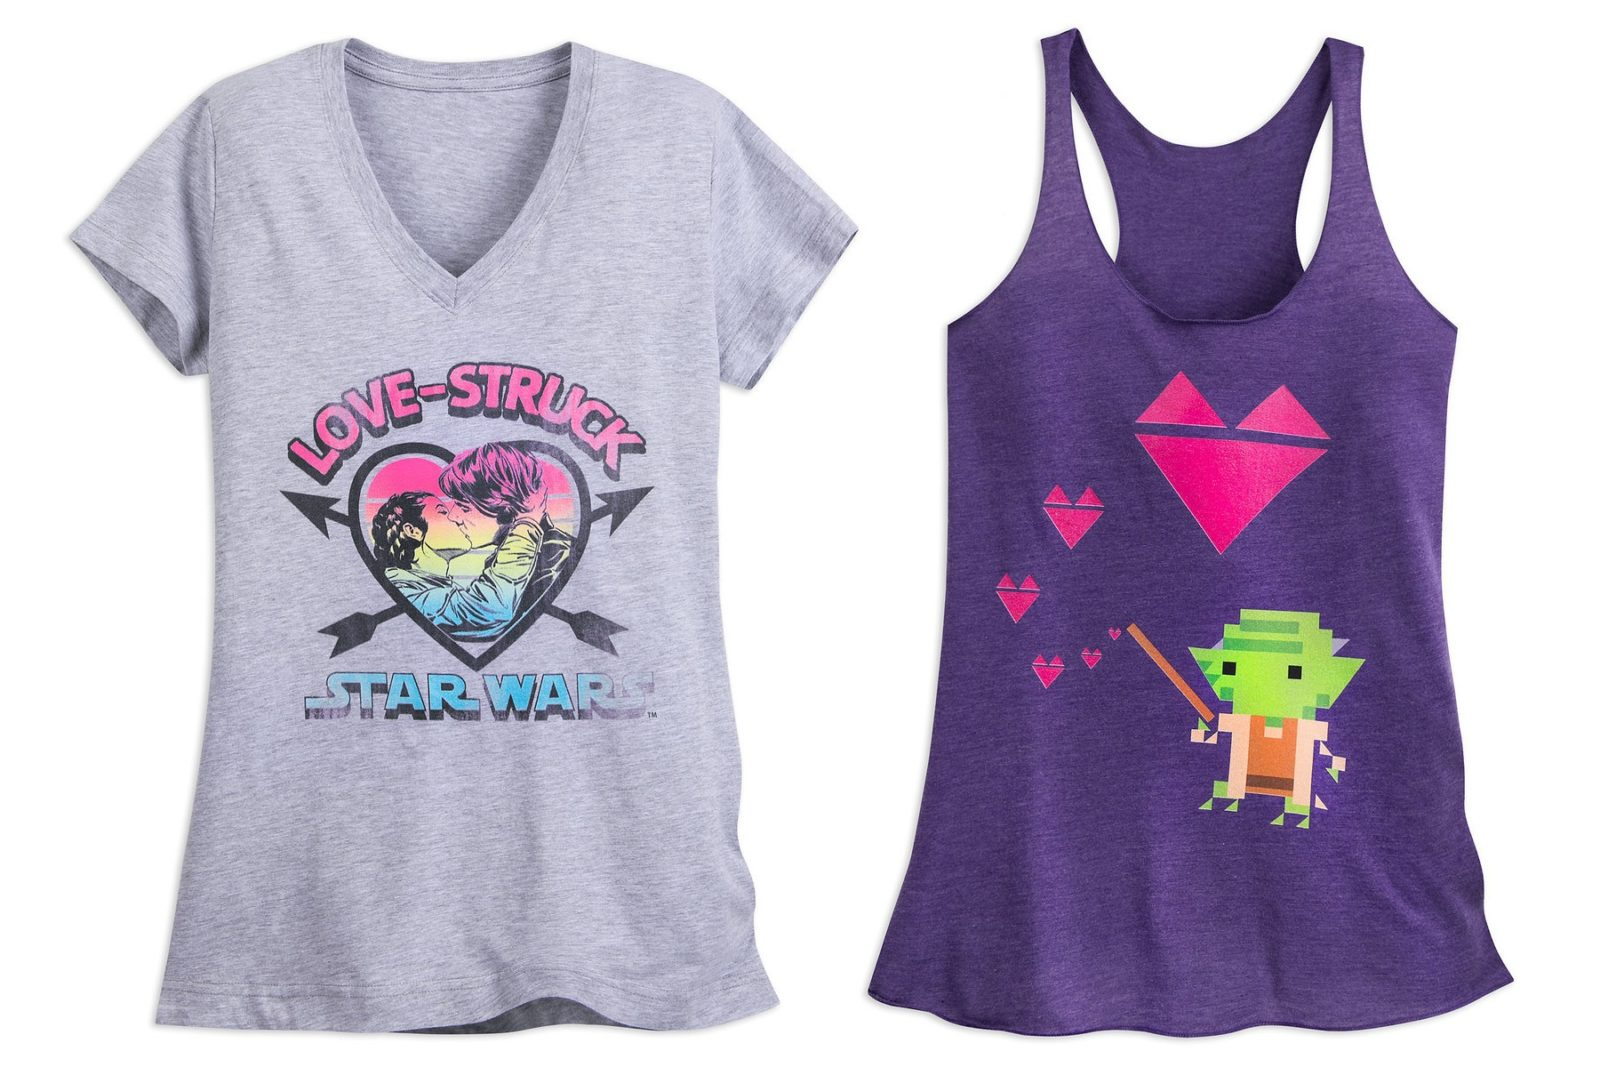 Shop Disney Star Wars Tops for Valentines Day